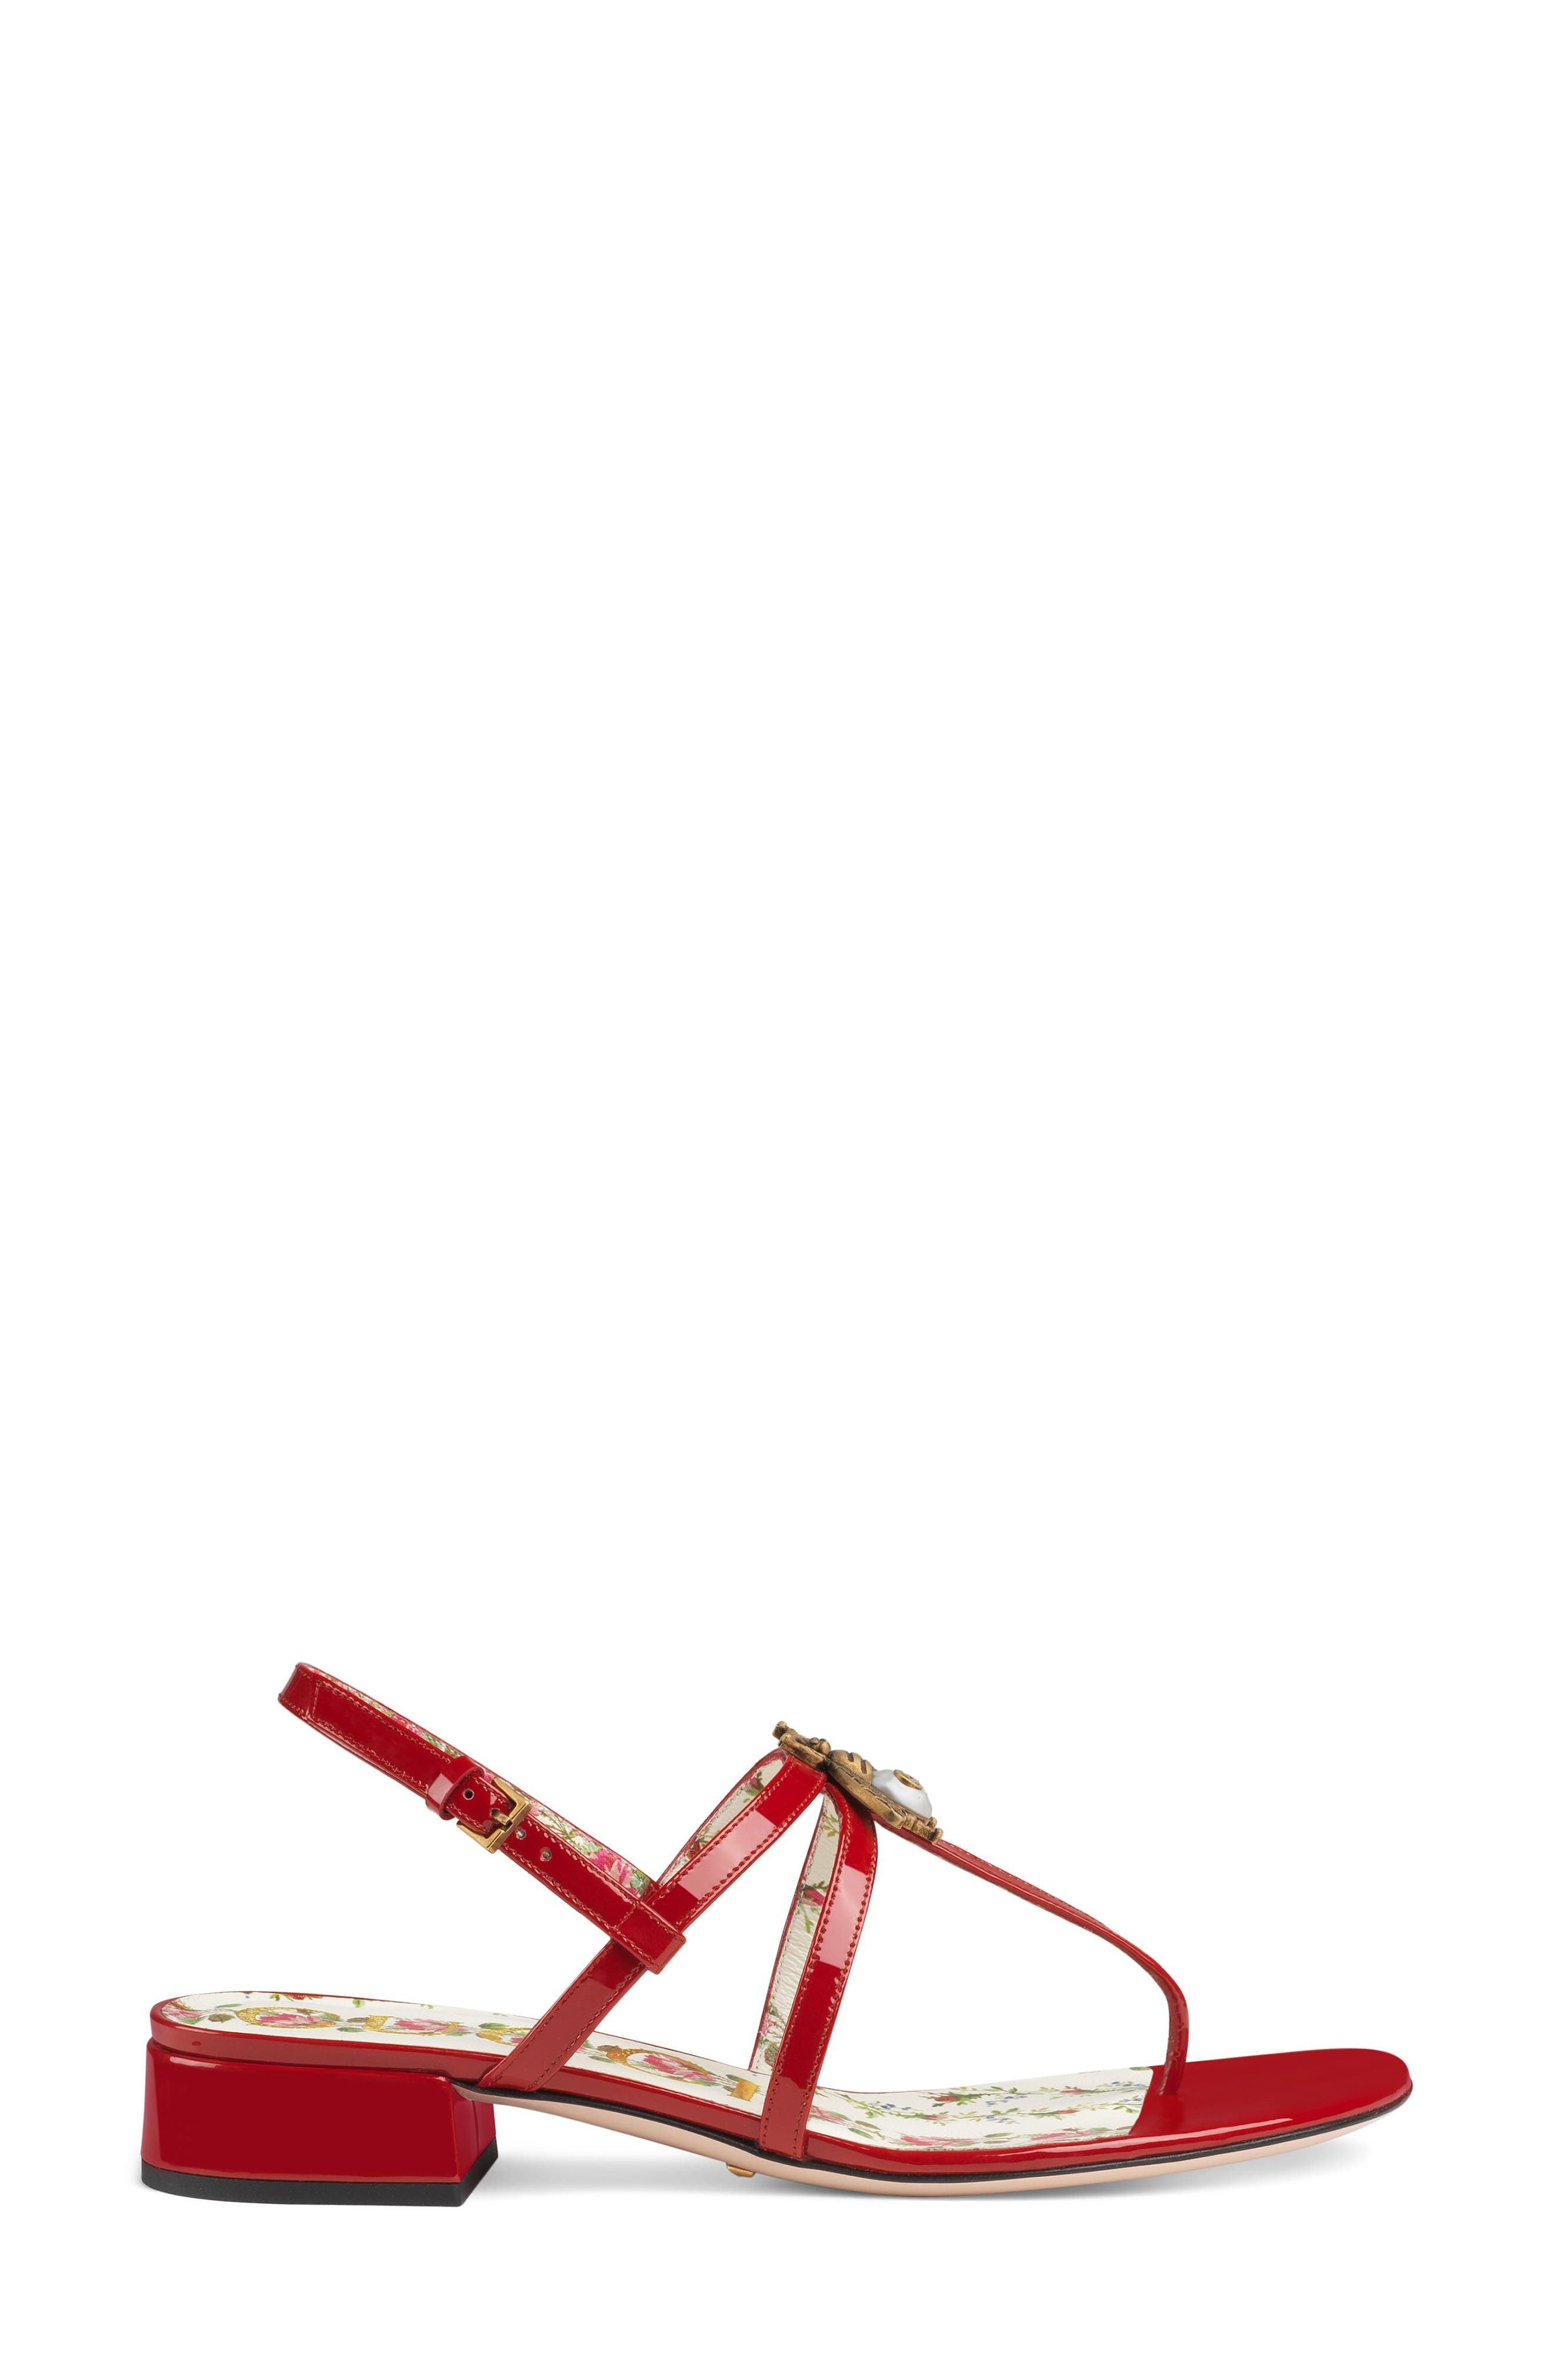 GUCCI, Bee Thong Sandal, Alternate thumbnail 2, color, HIBISCUS RED